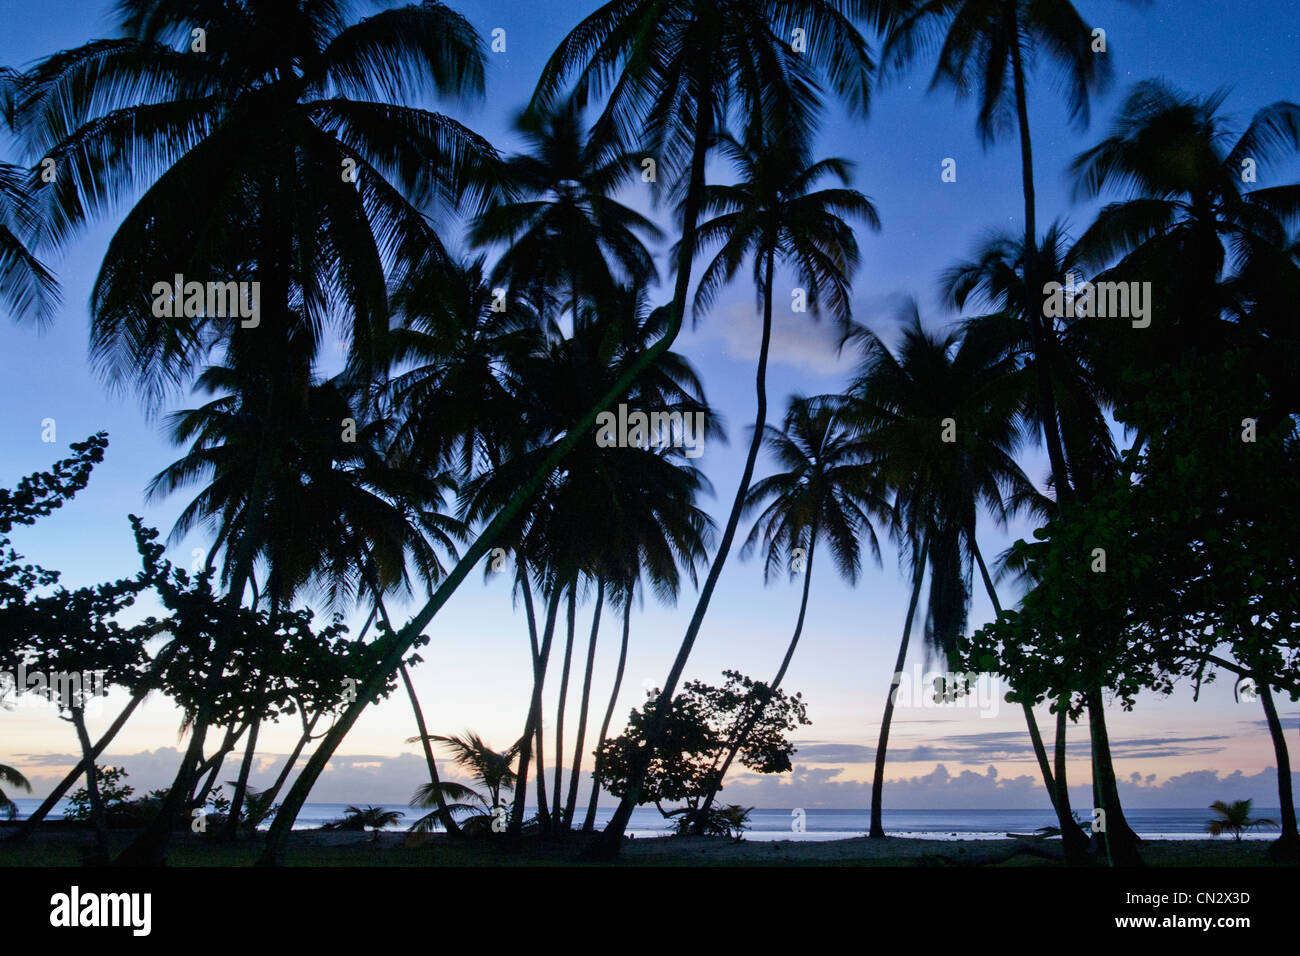 Palm trees in silhouette, Pigeon Point, Tobago - Stock Image